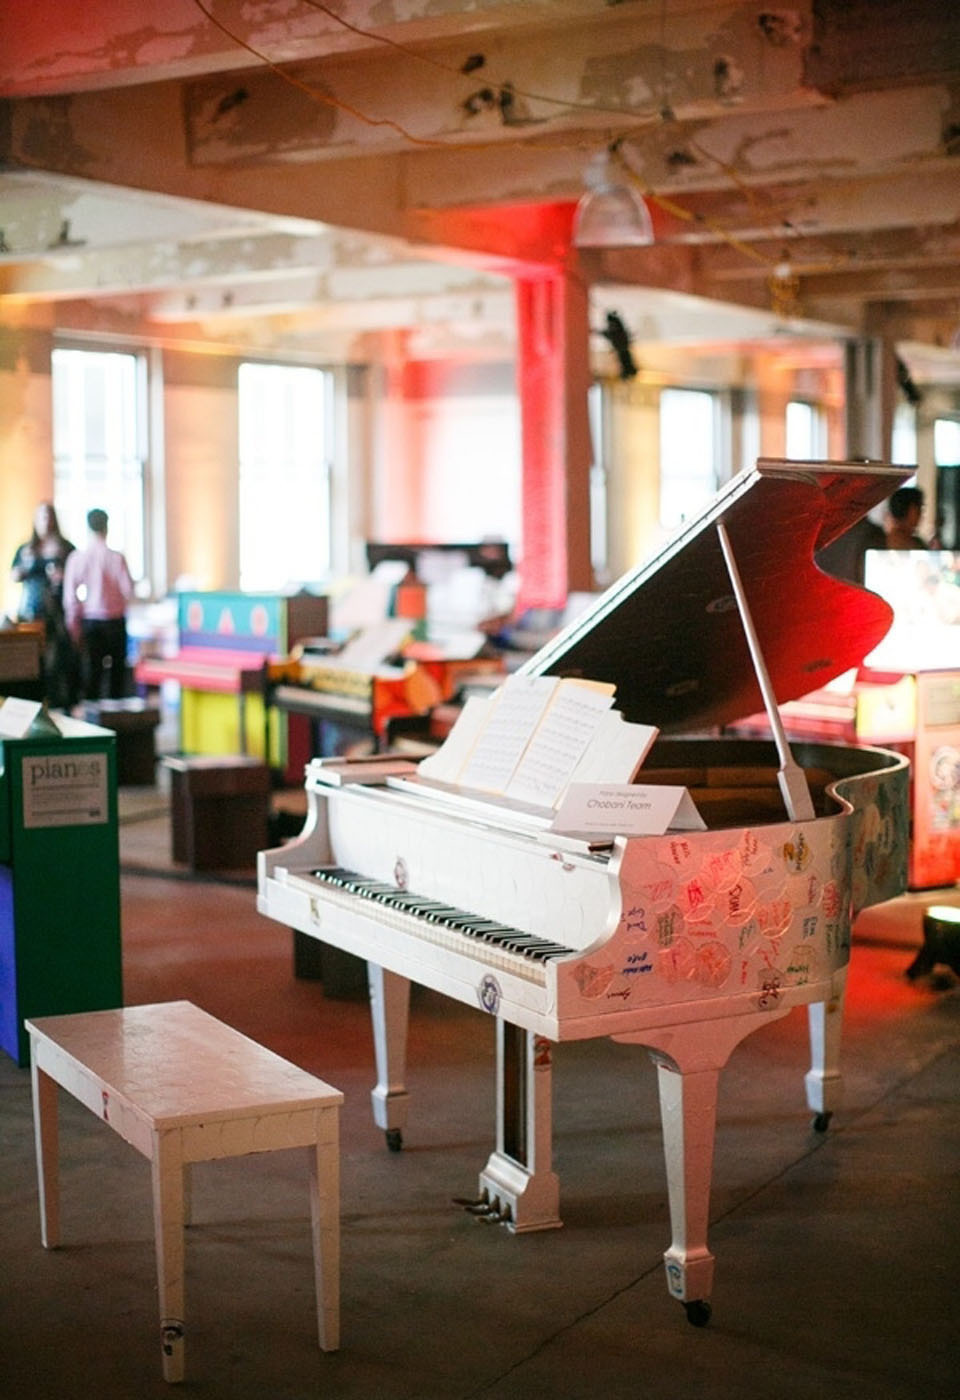 SING FOR HOPE PIANOS NYC